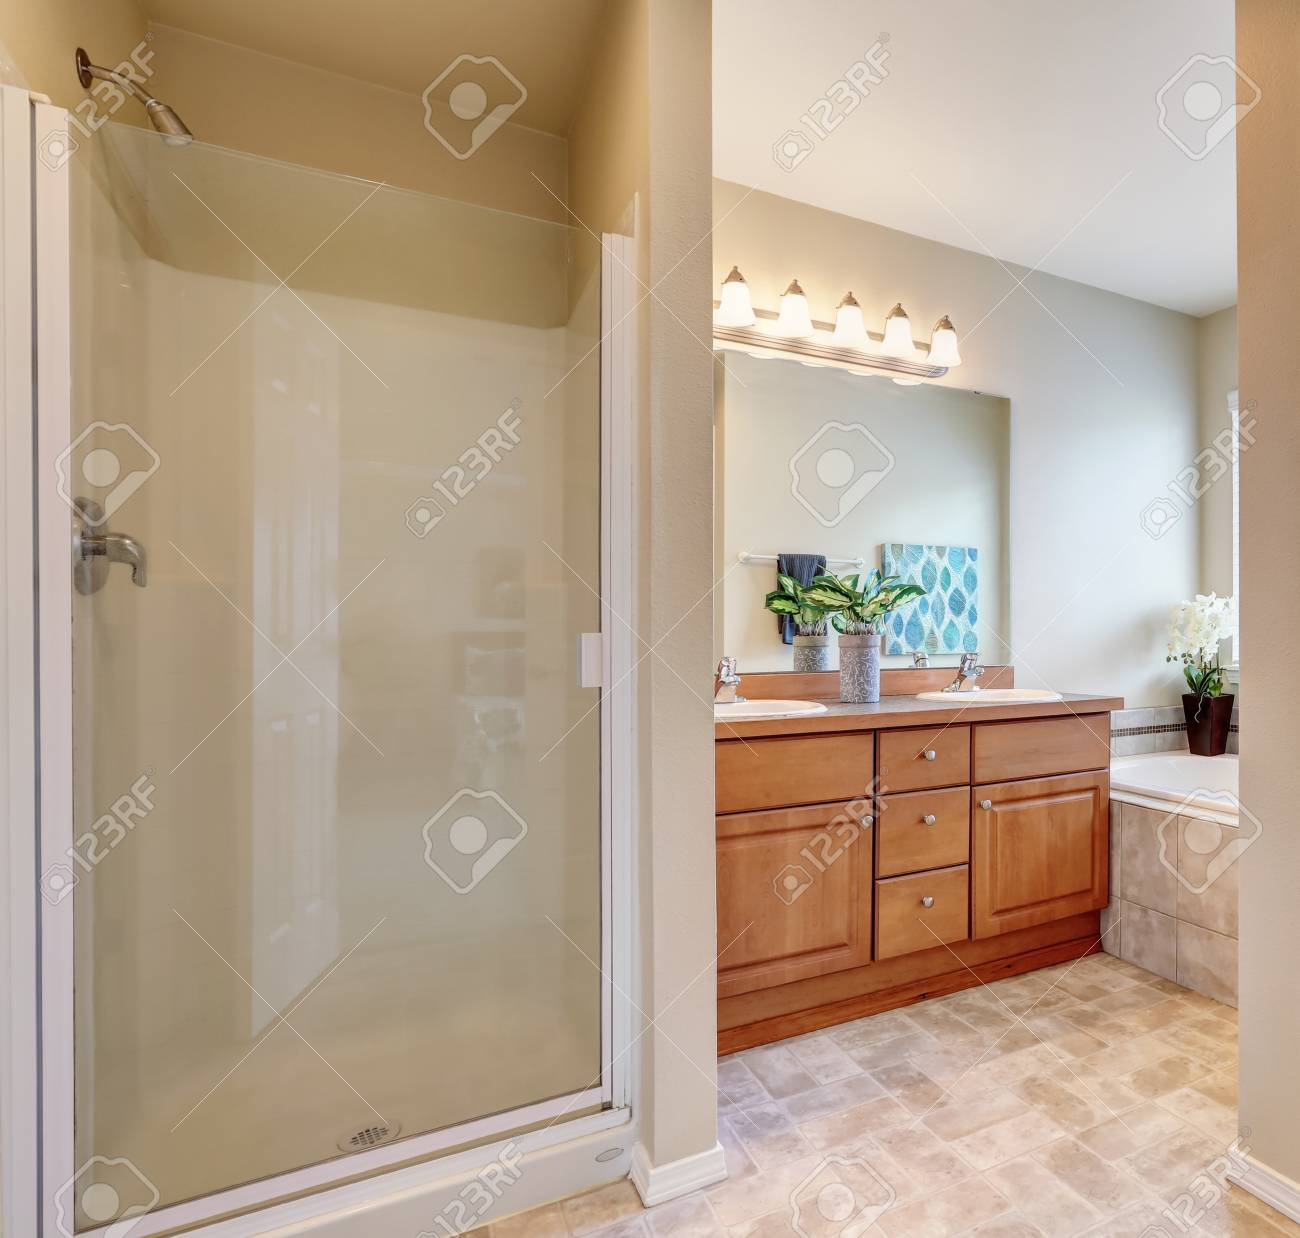 Bathroom Interior With Glass Door Shower Bath Tub View And Small Stock Photo Picture And Royalty Free Image Image 67033586